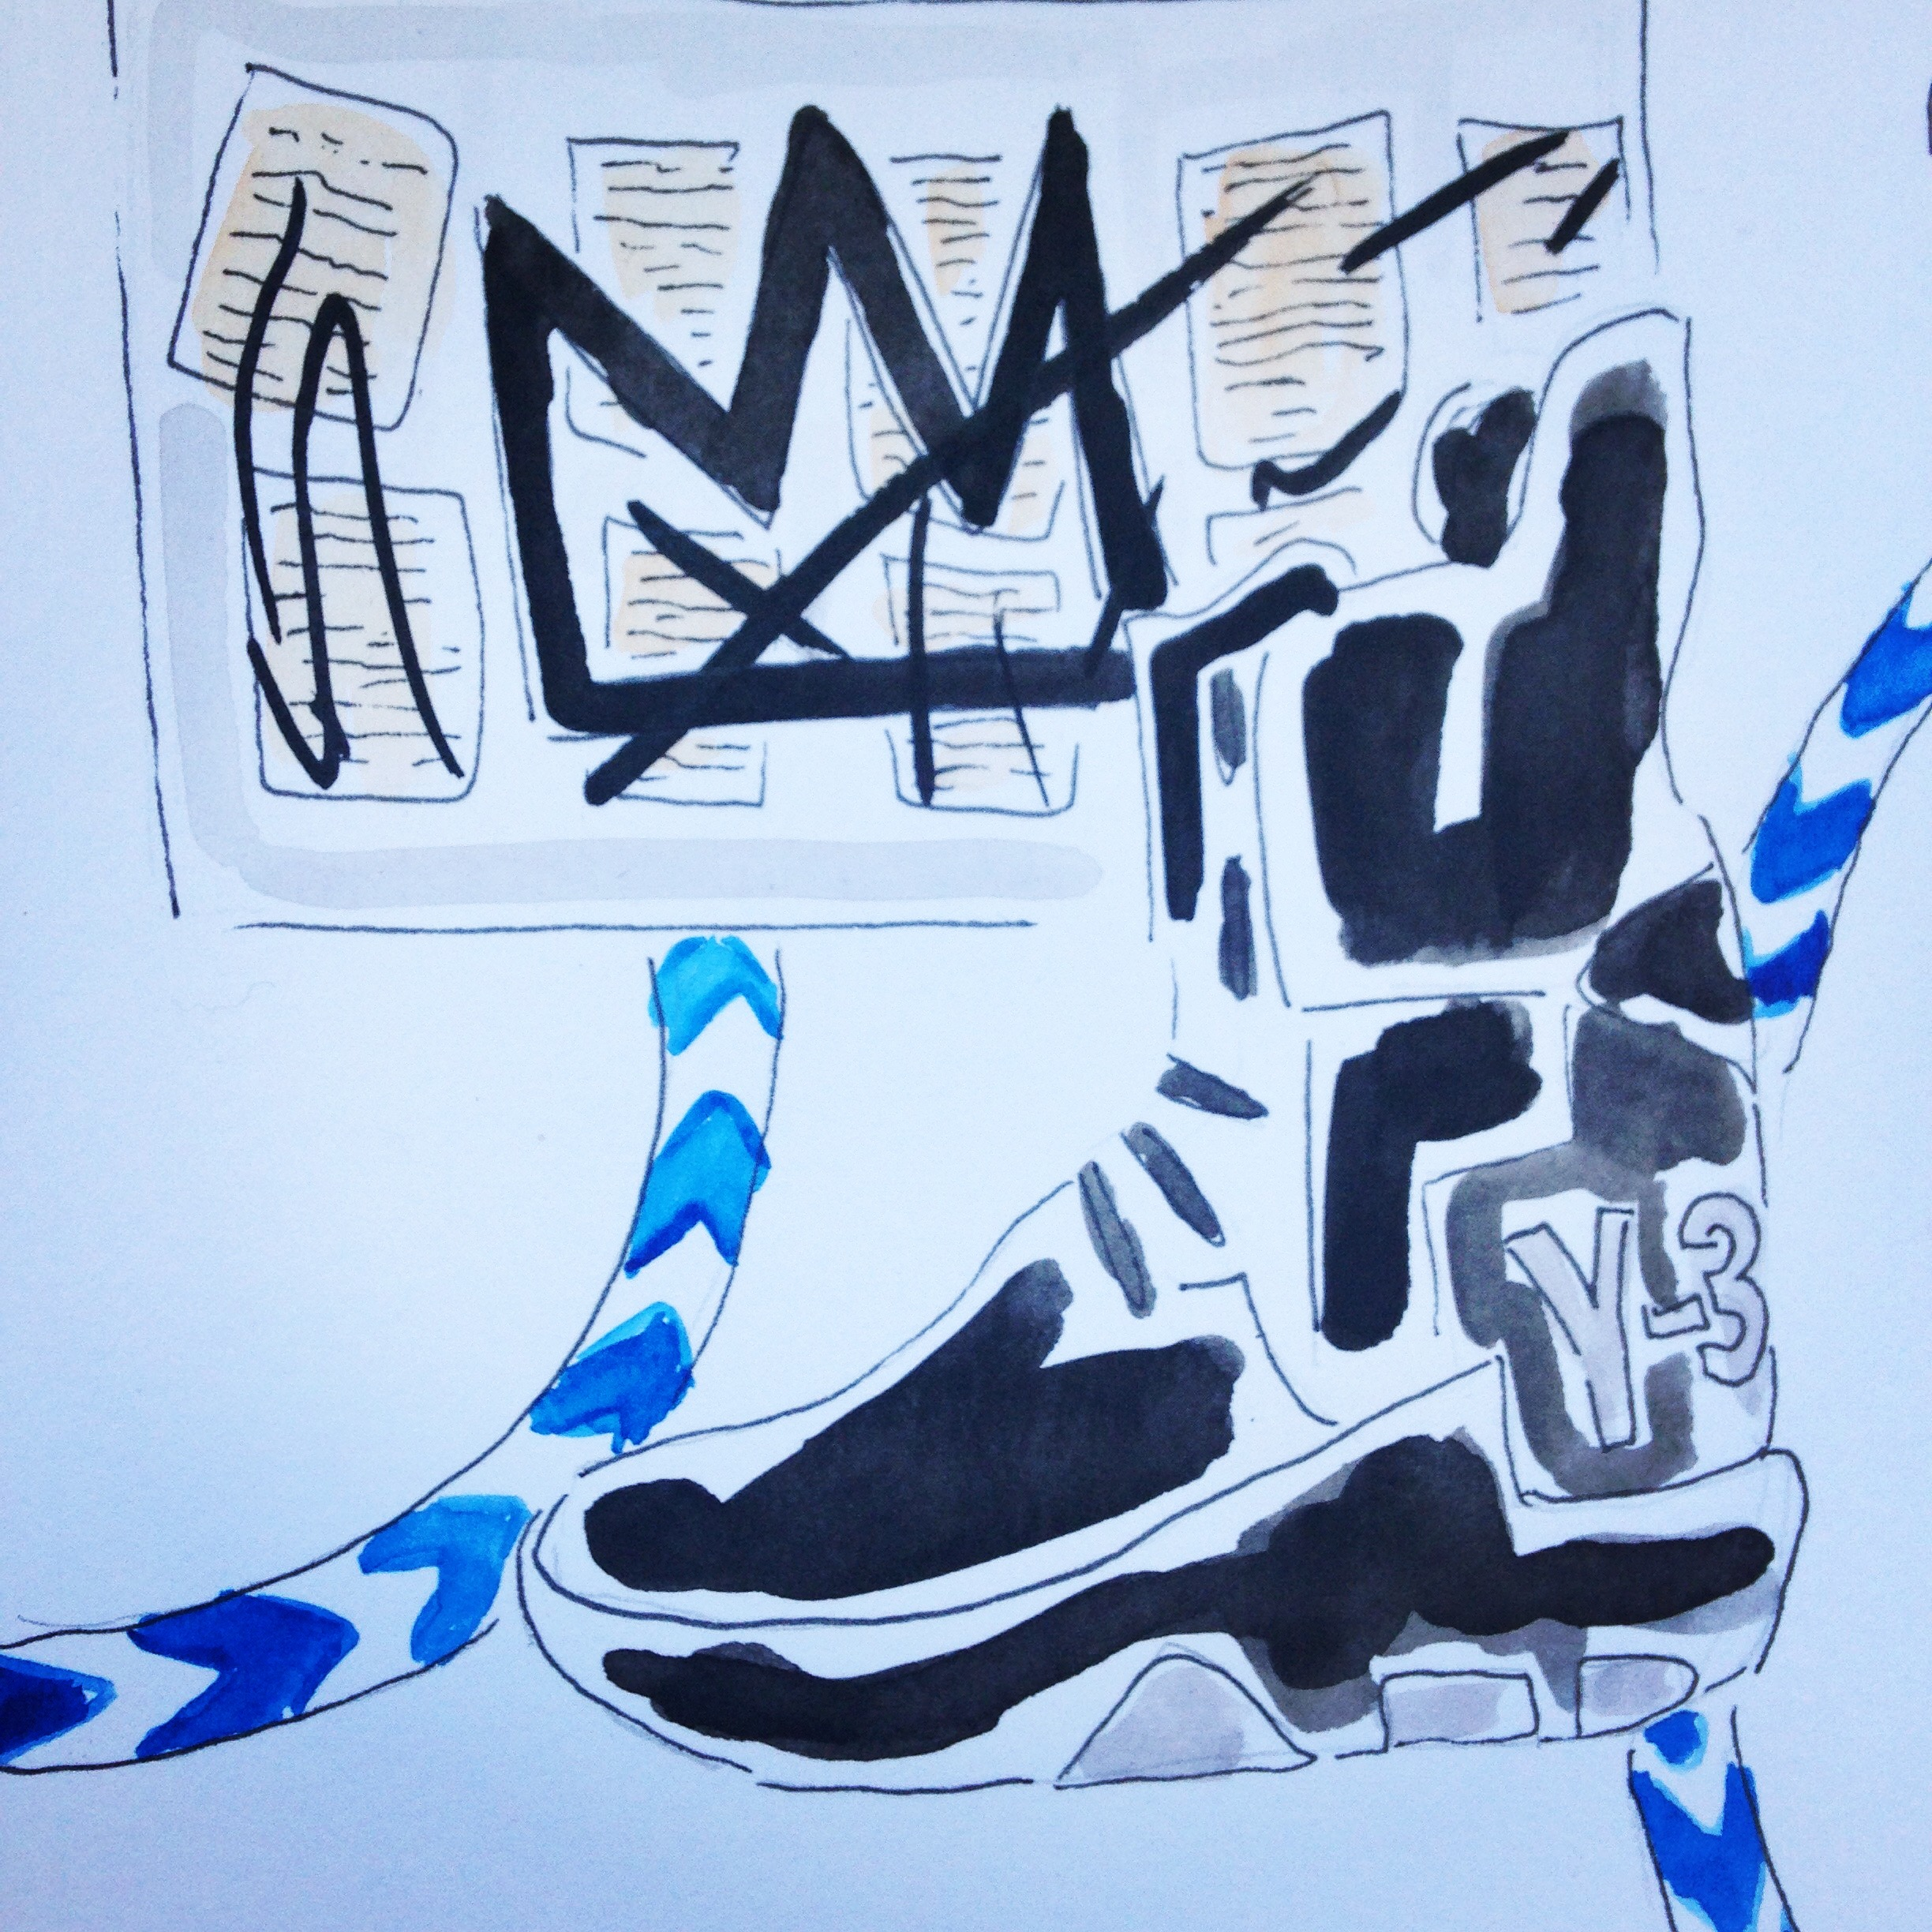 Y-3 Noci High Top Shoe available here pictured with Basquiat's Crown Painting.